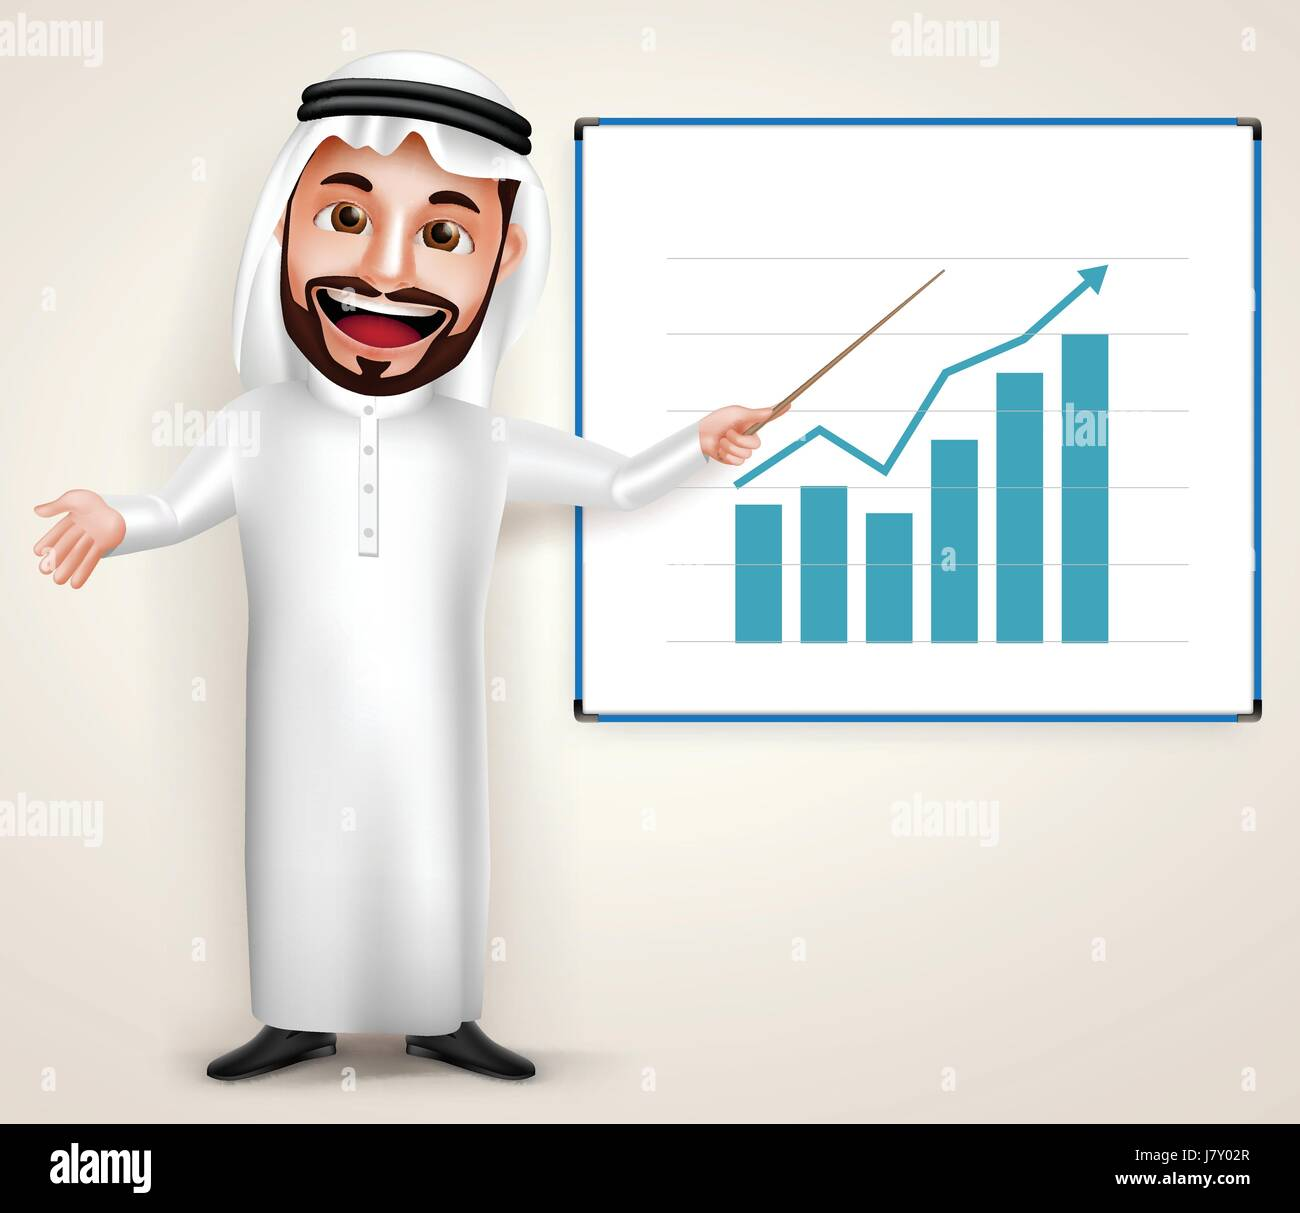 Professional Saudi Arab man vector character wearing thobe teaching chart graph in white board. Vector illustration. - Stock Image